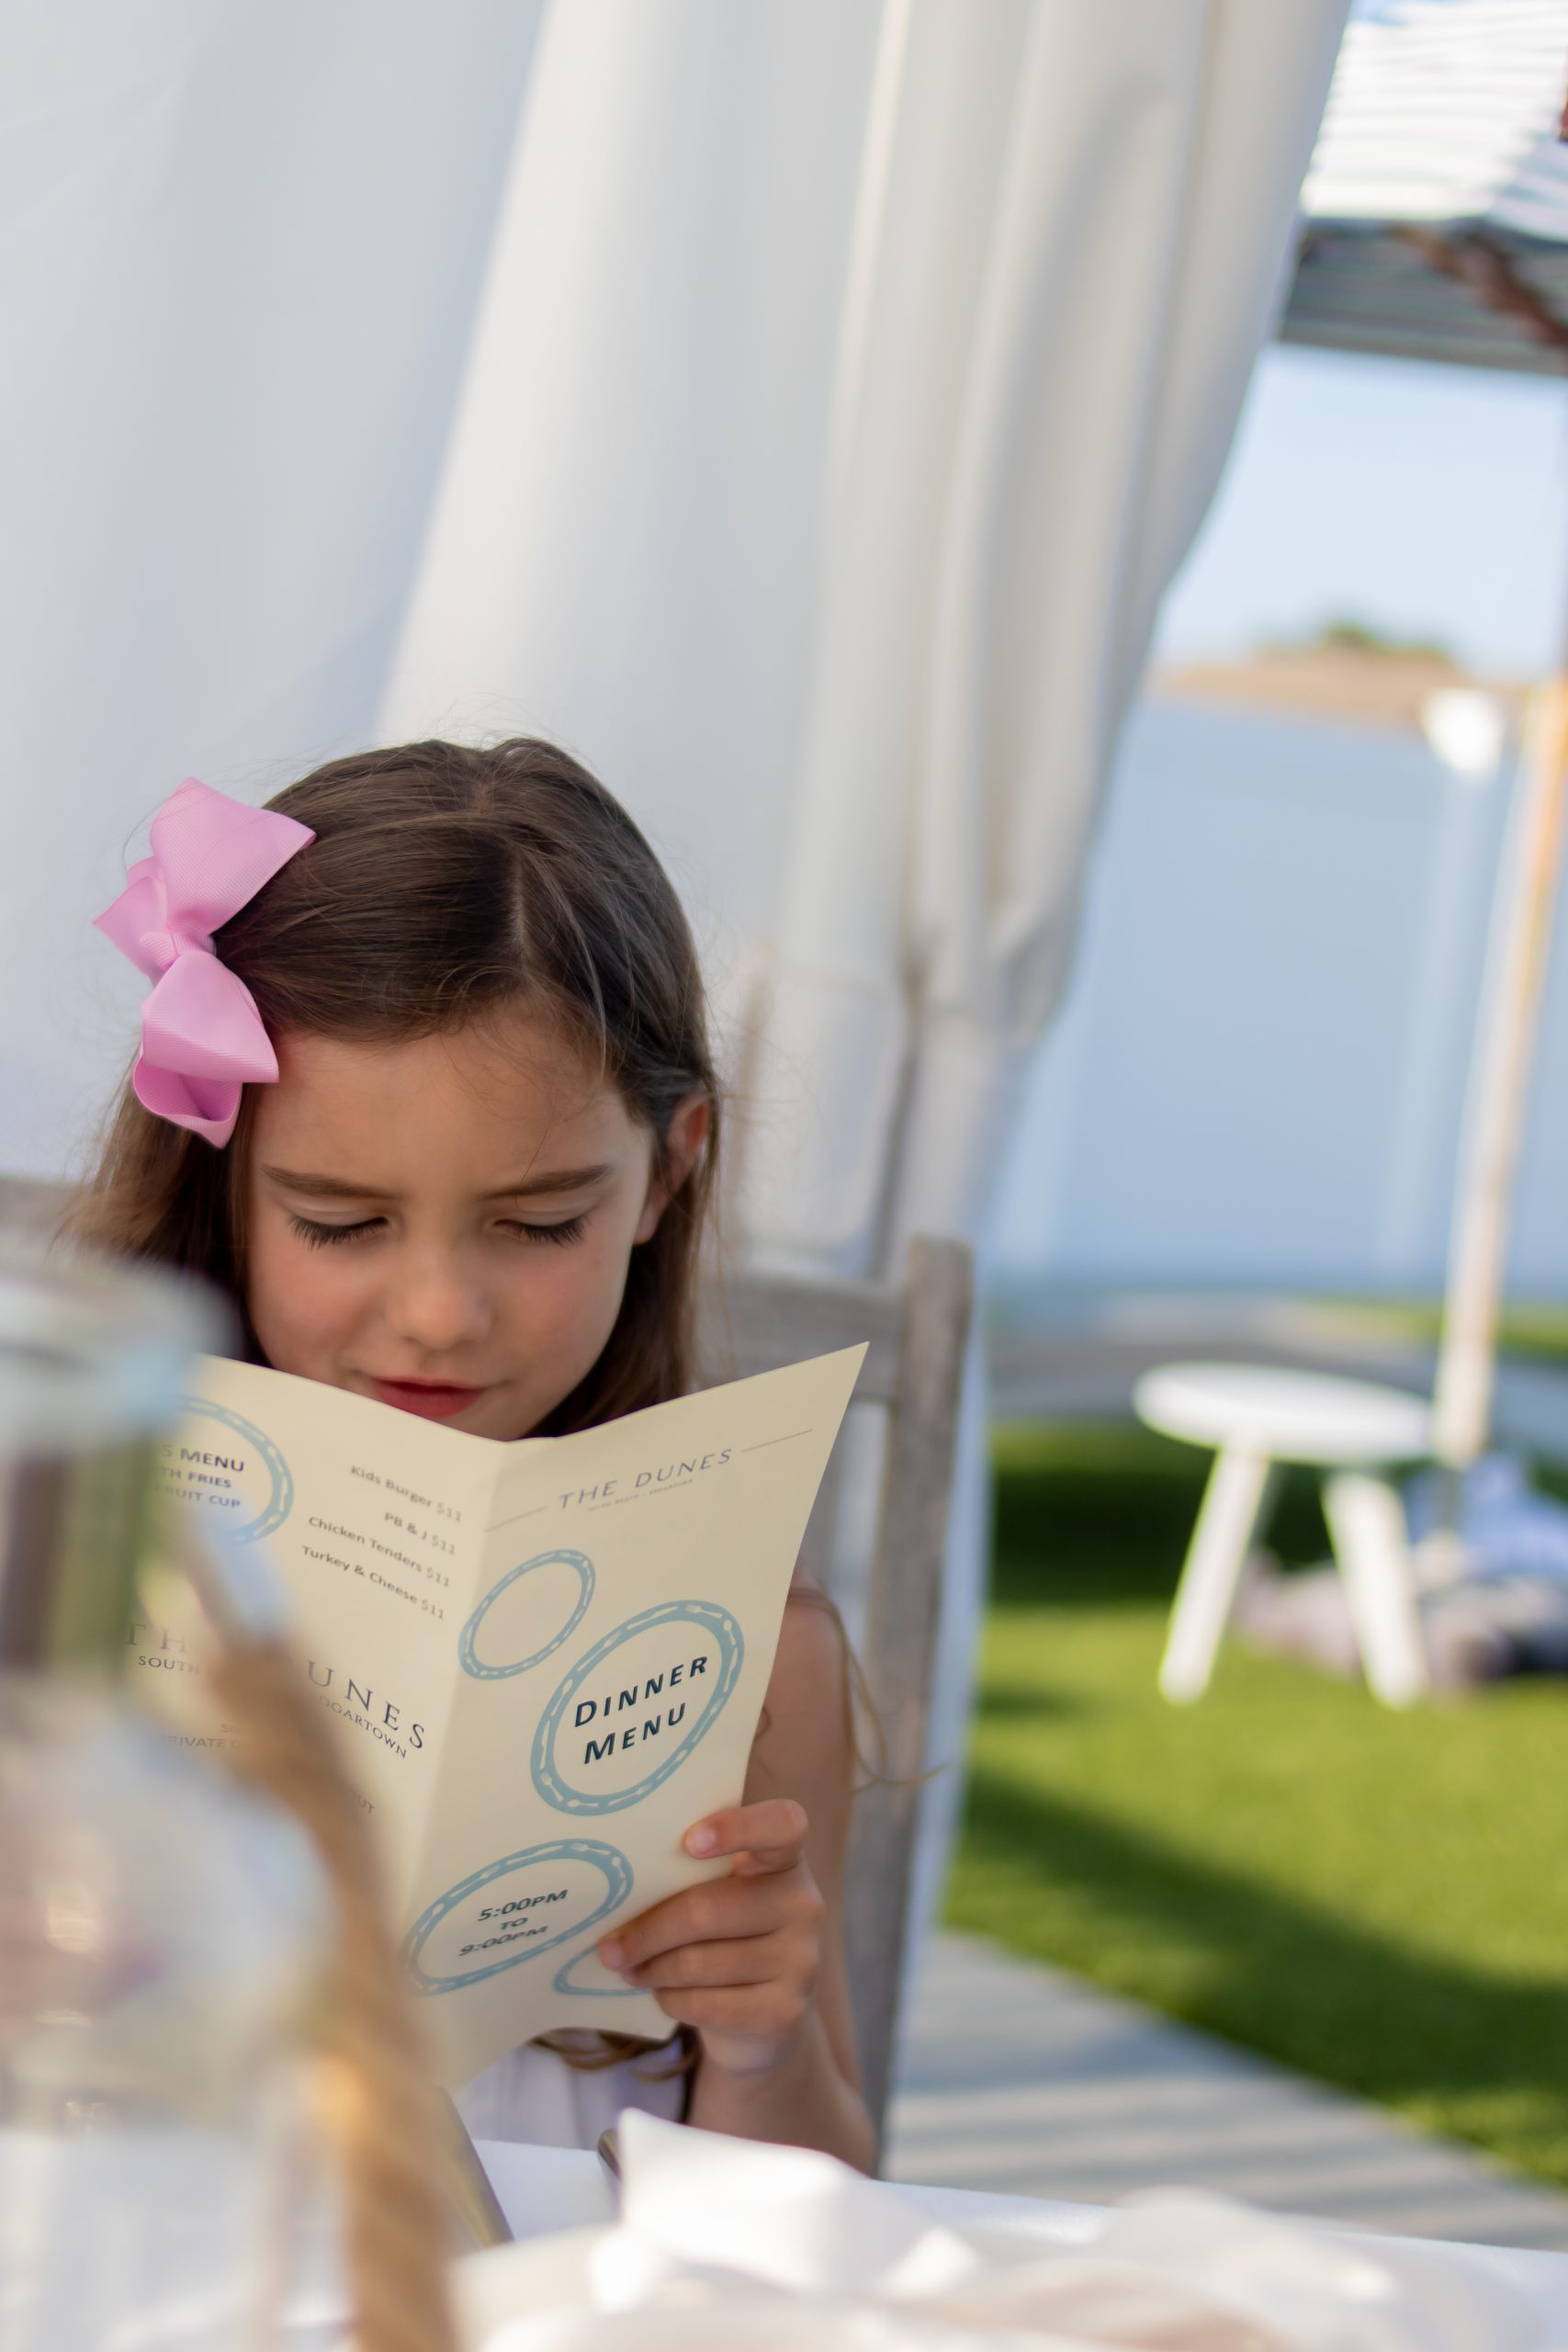 little girl reading Dunes menu at Winnetu